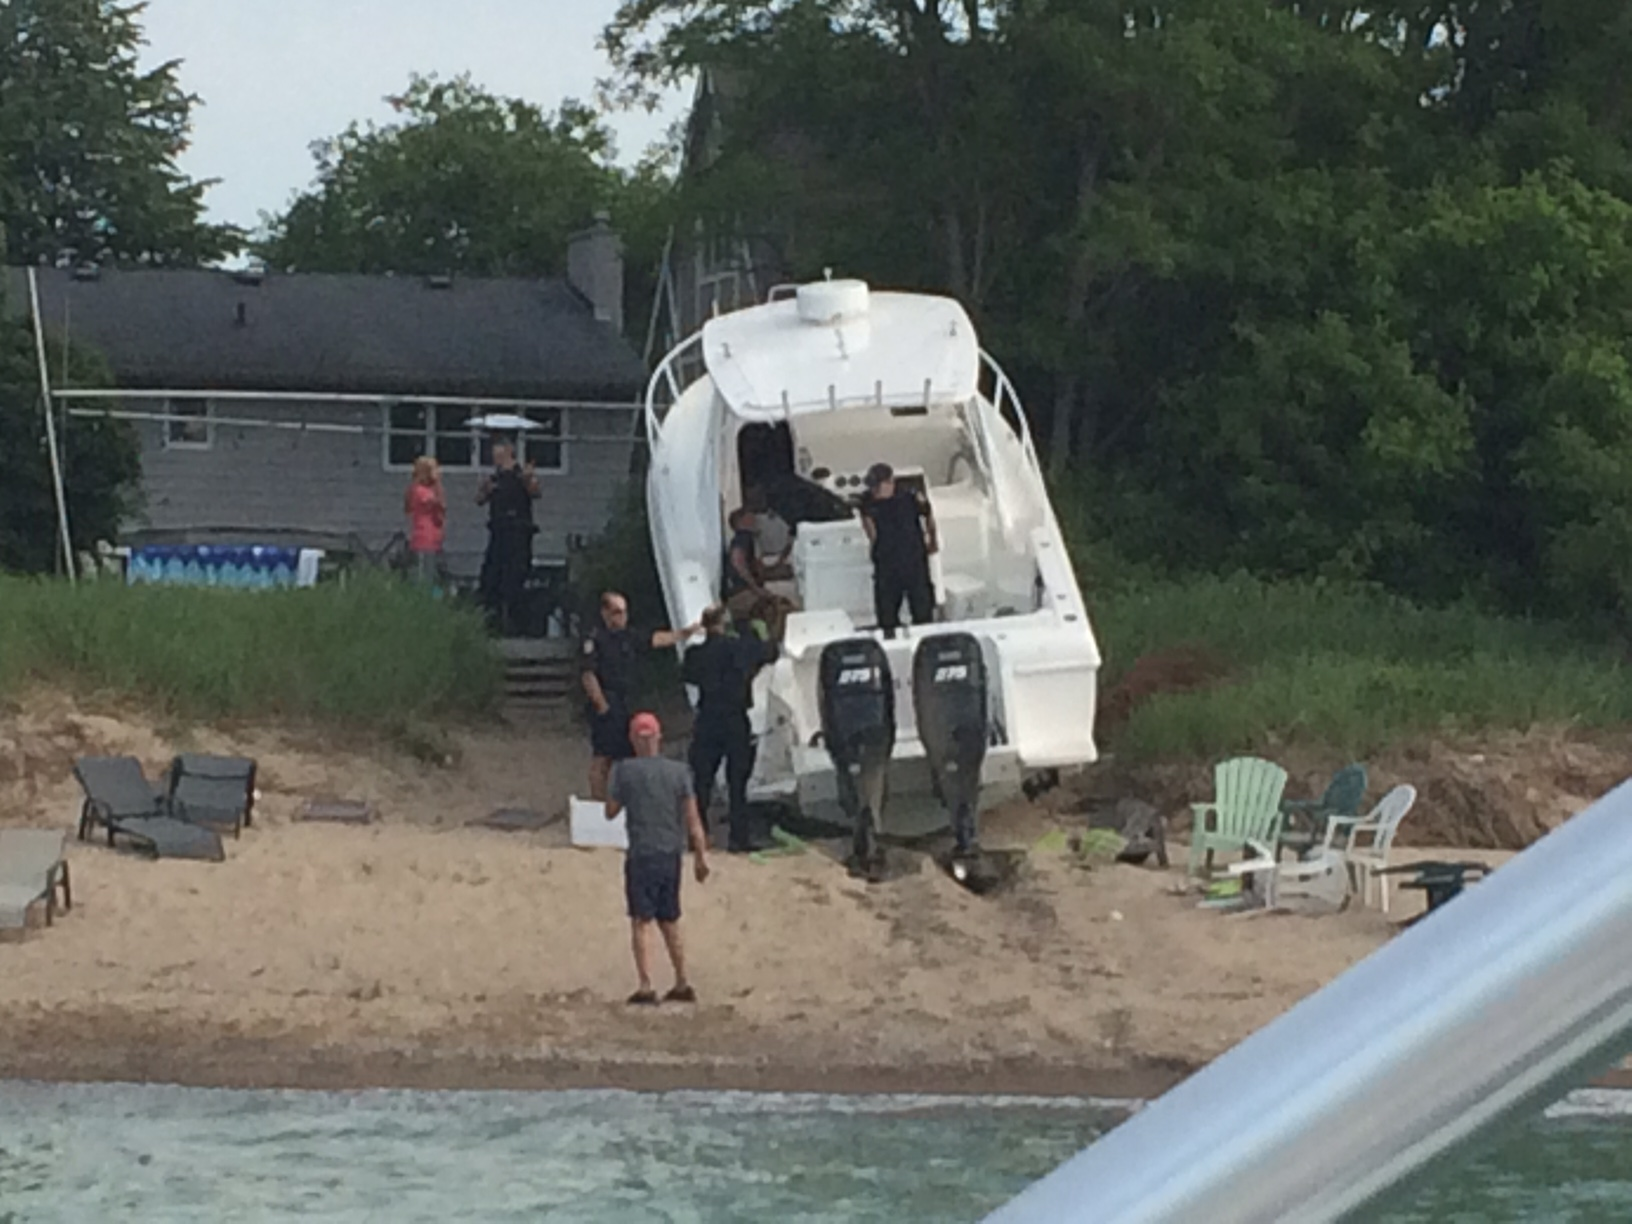 Michigan Boater Charged